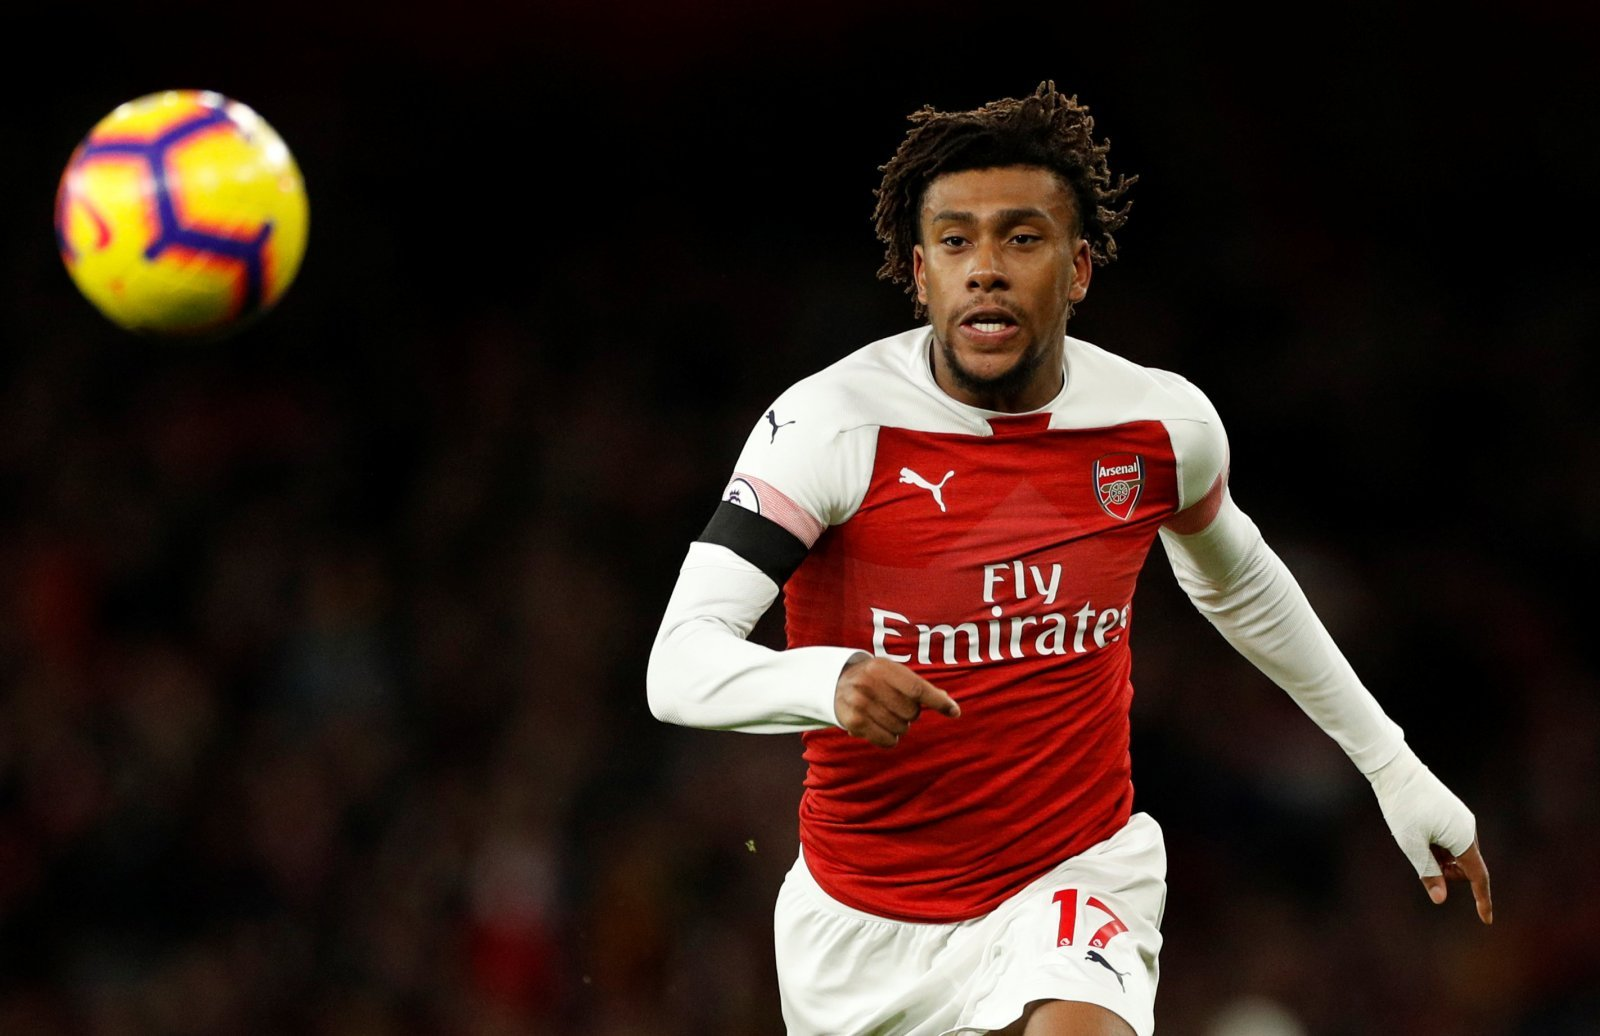 Arsenal fans take to Twitter to celebrate Iwobi injury